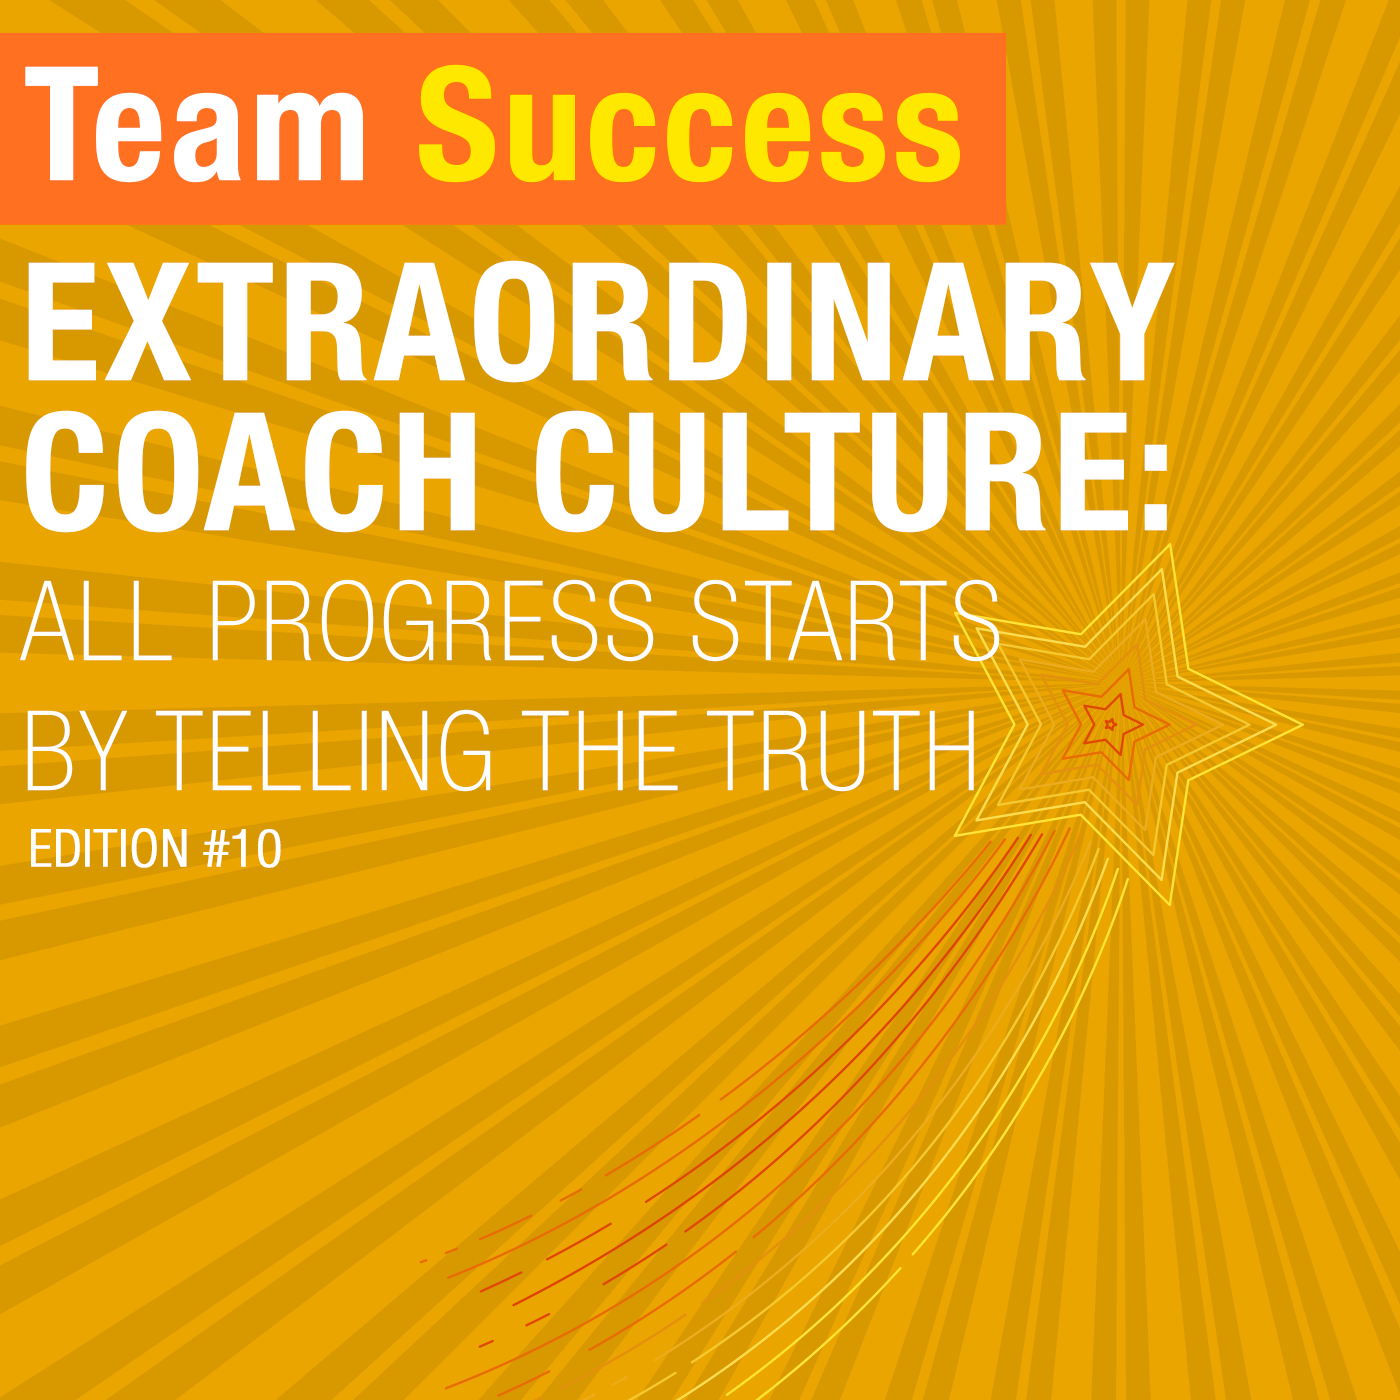 Extraordinary Coach Culture: All Progress Starts By Telling The Truth